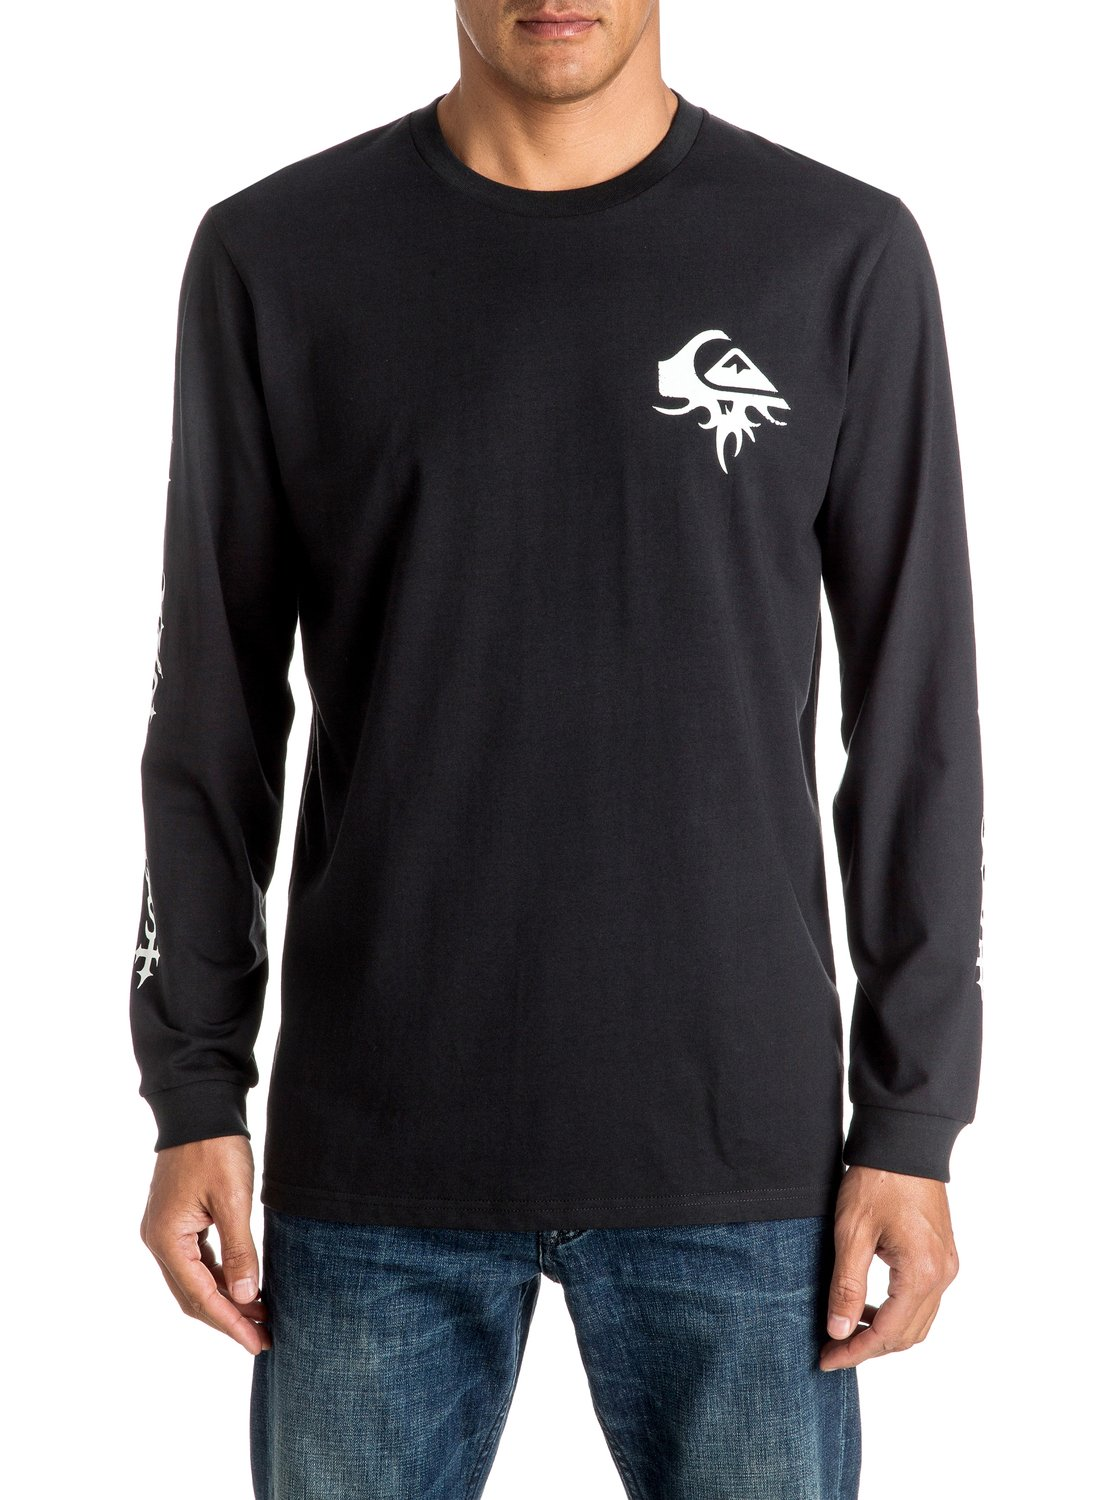 f580a2ed3b86 0 Born Thorny - Long Sleeve T-shirt Black EQYZT04271 Quiksilver